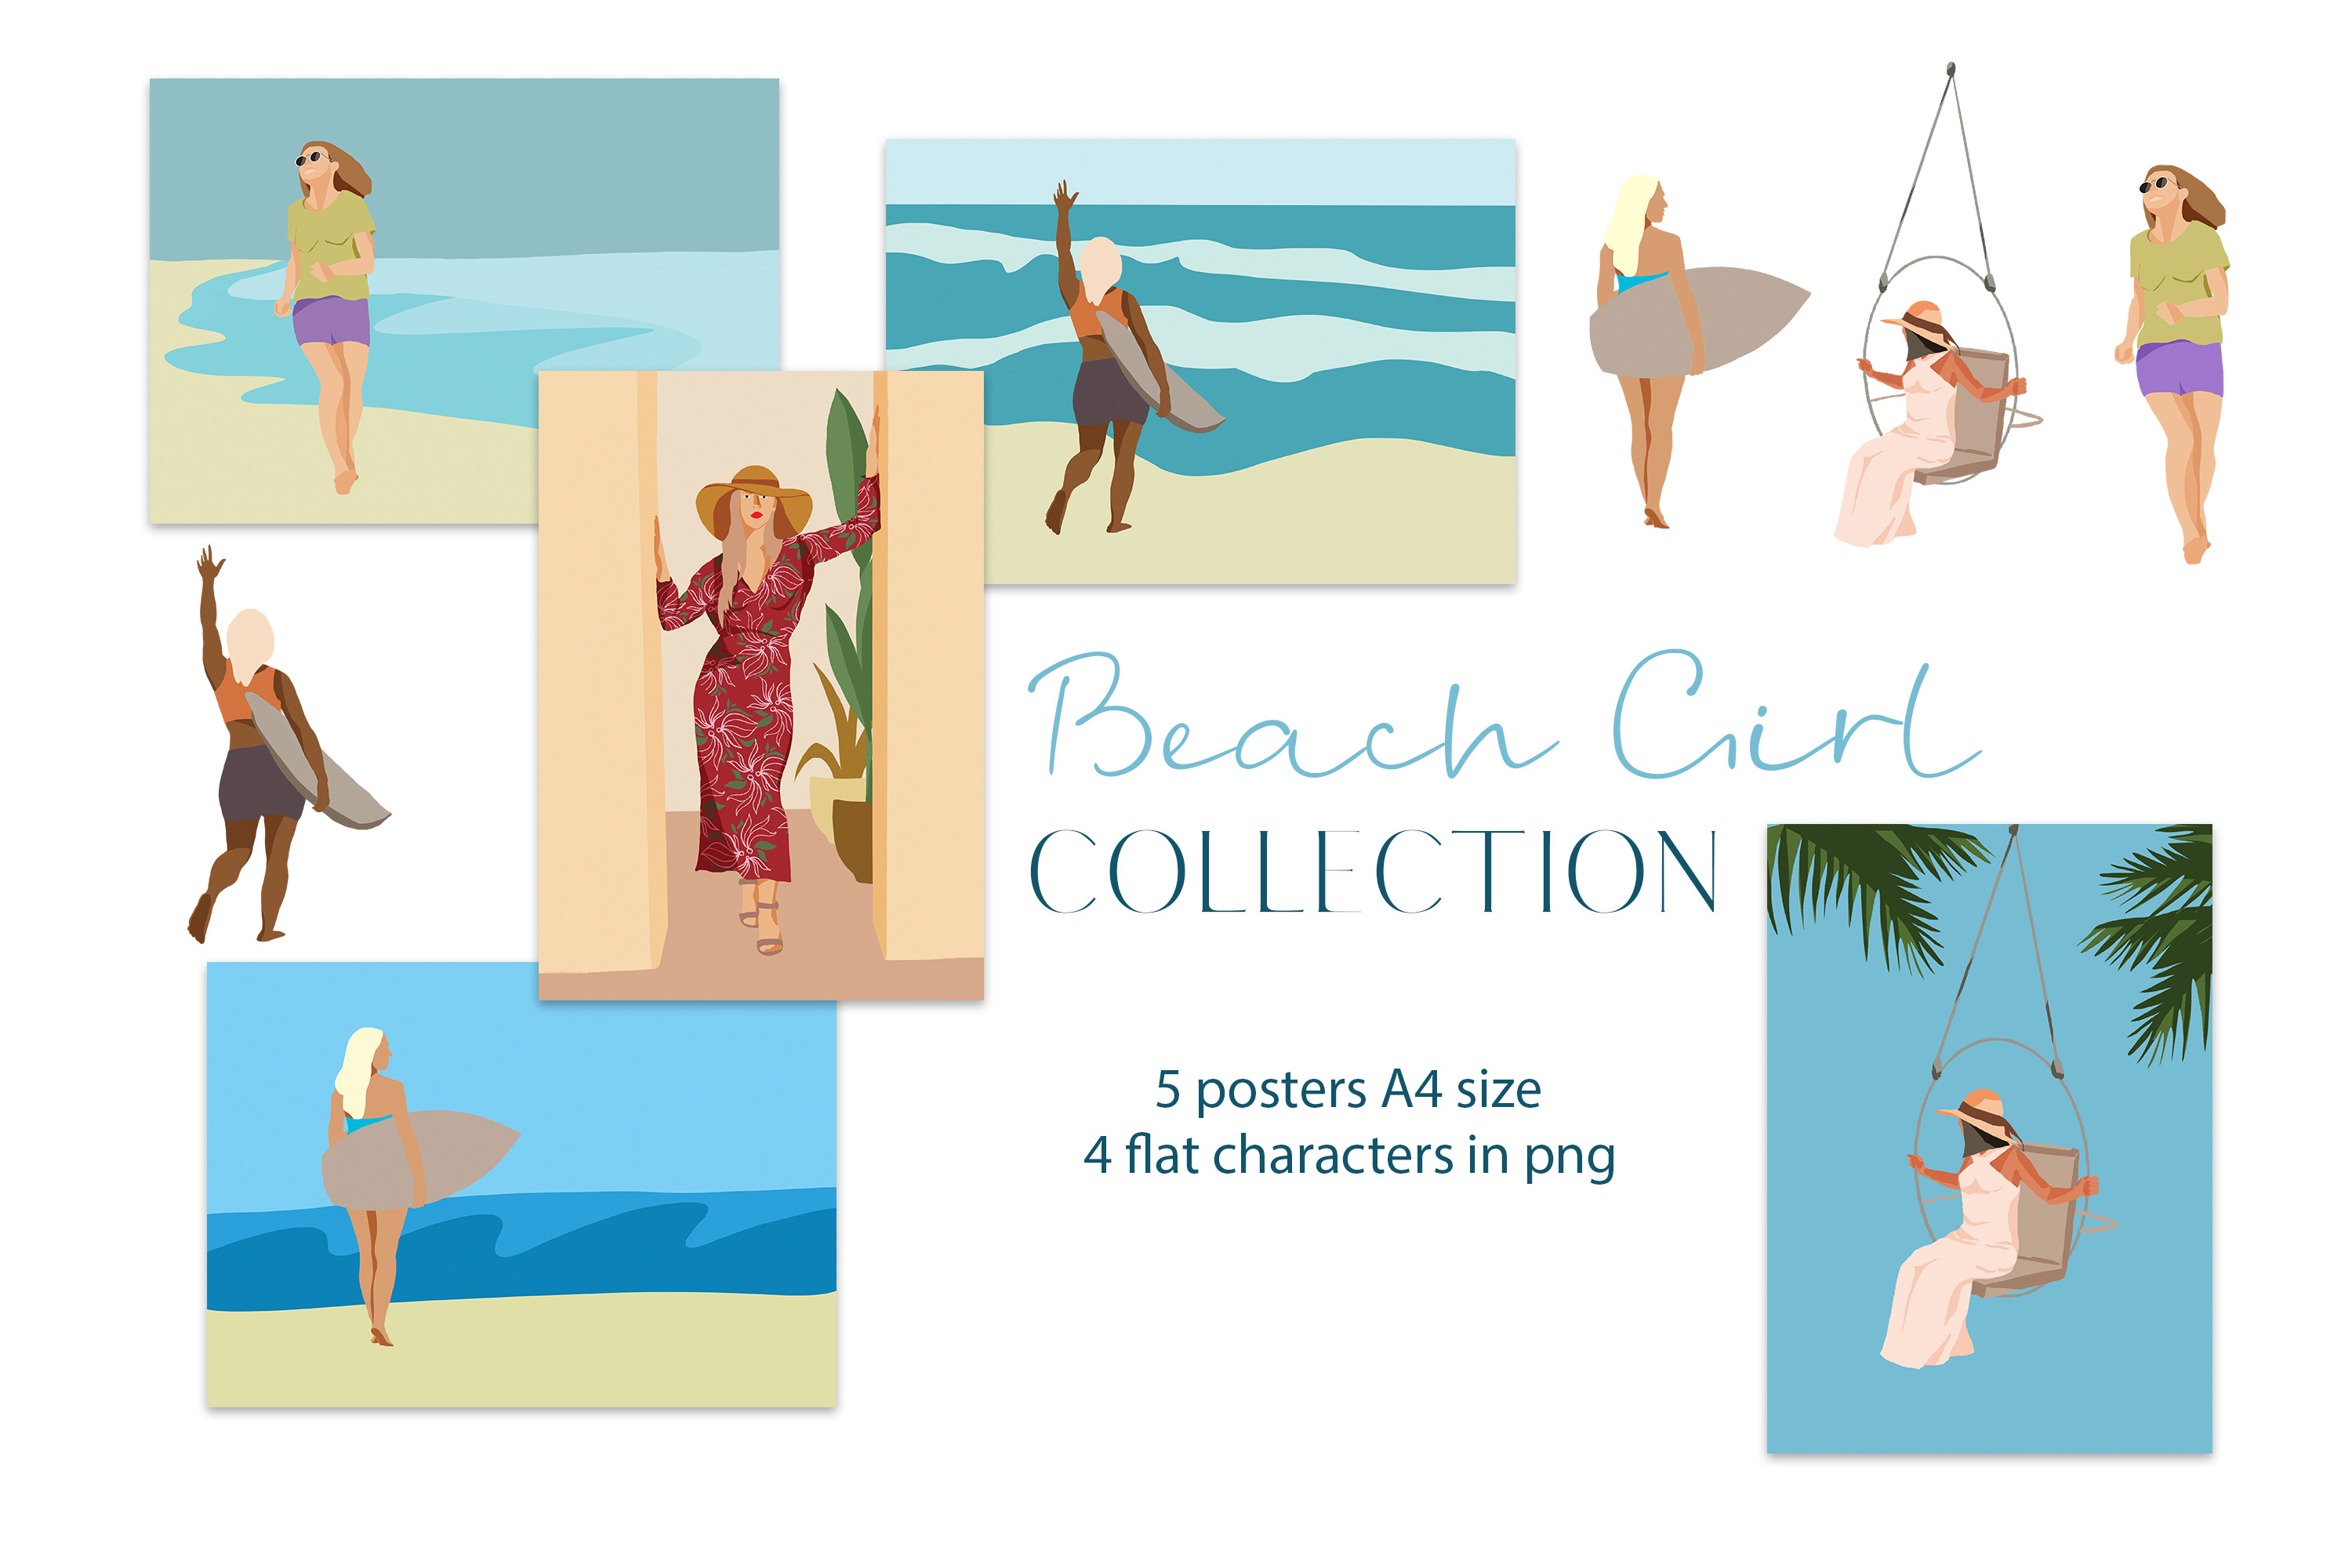 Download Free Beach Girl Illustration Posters Graphic By Primafox Design for Cricut Explore, Silhouette and other cutting machines.